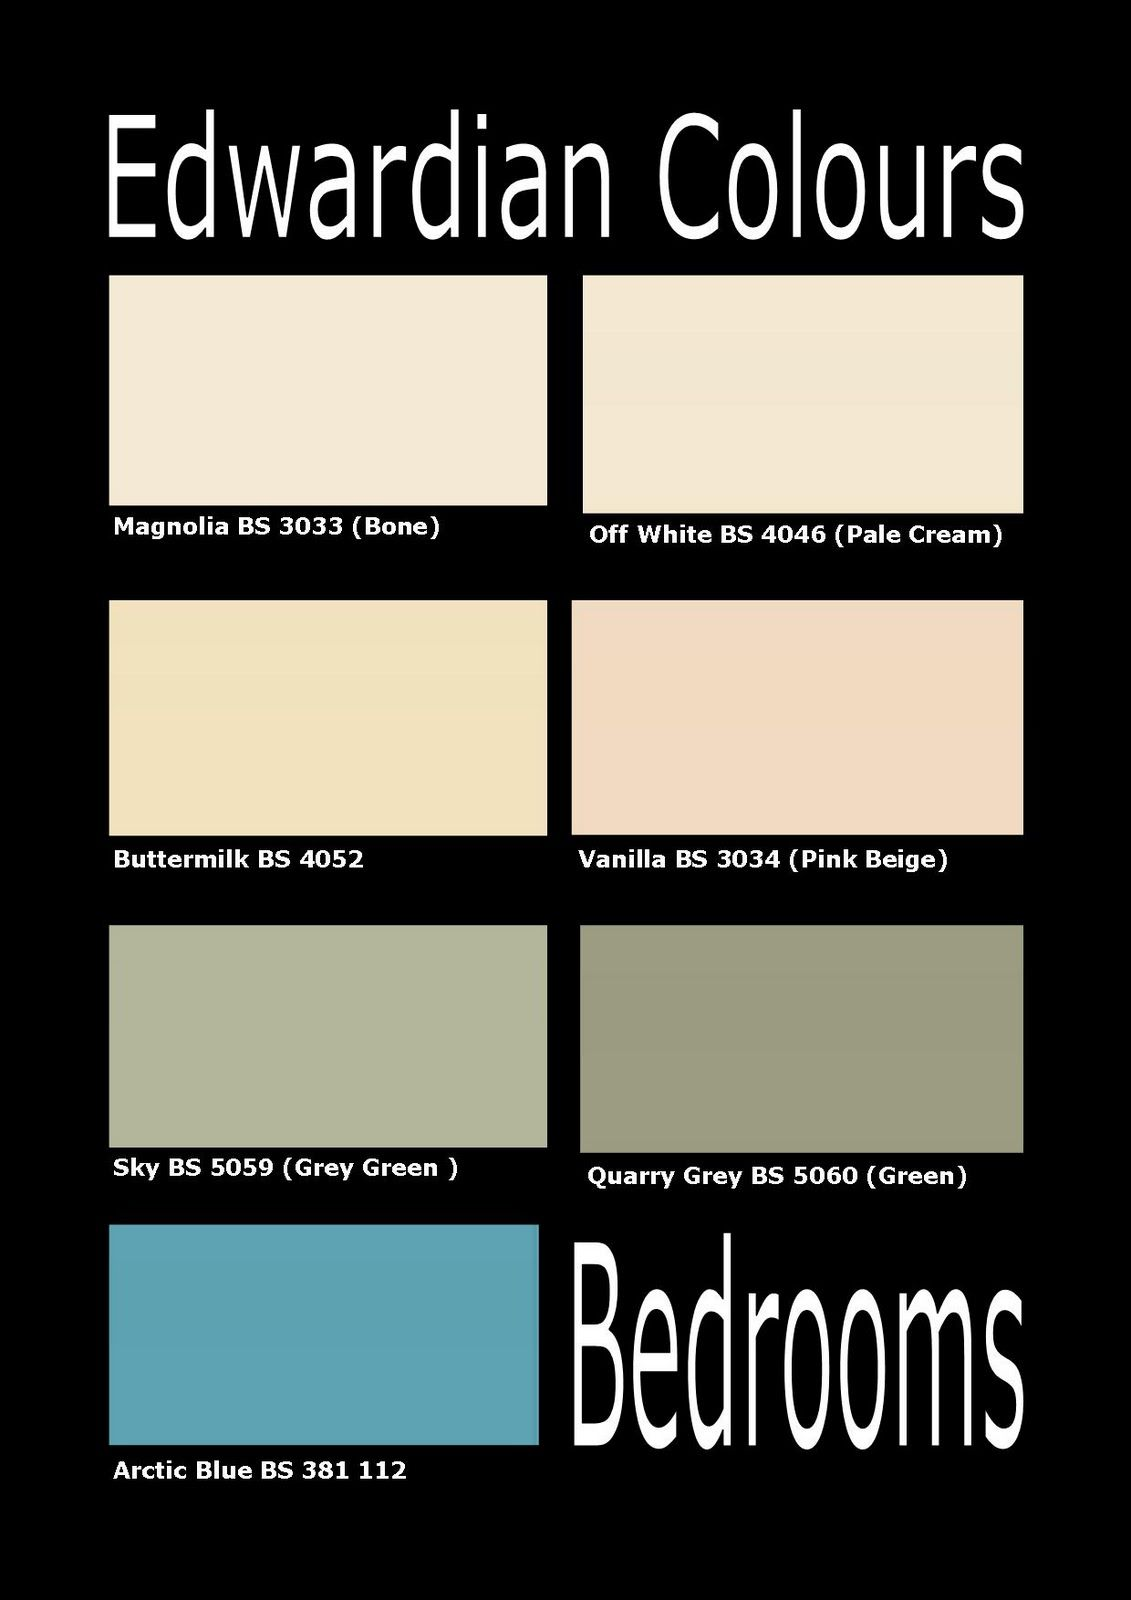 Edwardian Bedrooms Recreated In Contemporary Interior Design Colours Interior Design Color Colorful Interiors 1920s Interior Design